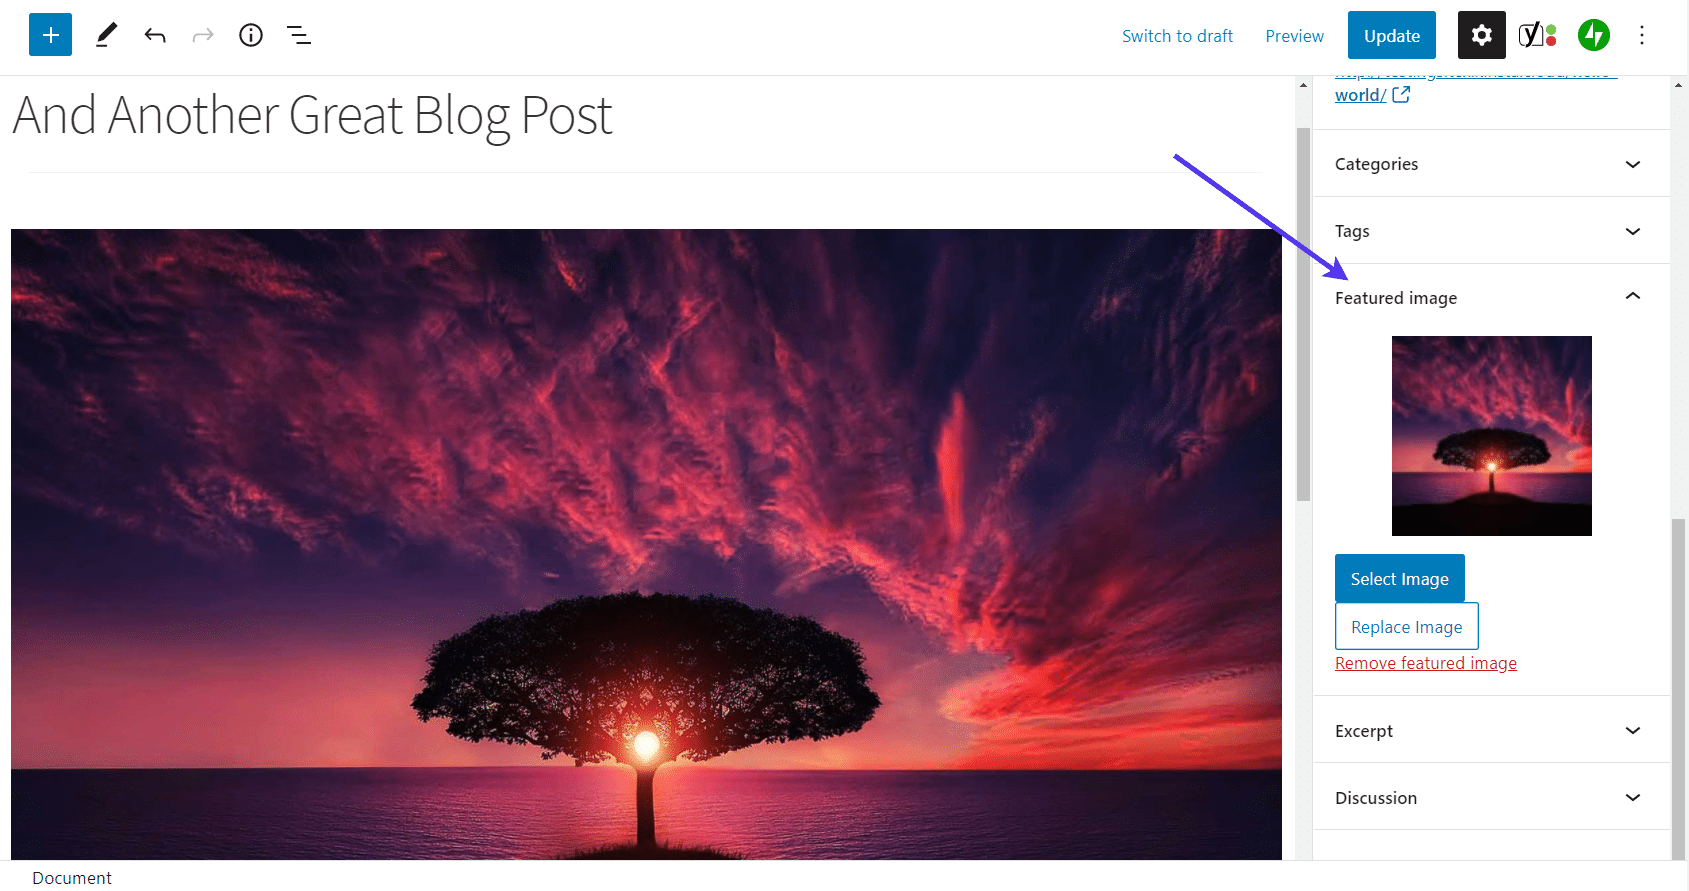 Check the 'Featured Image' tab